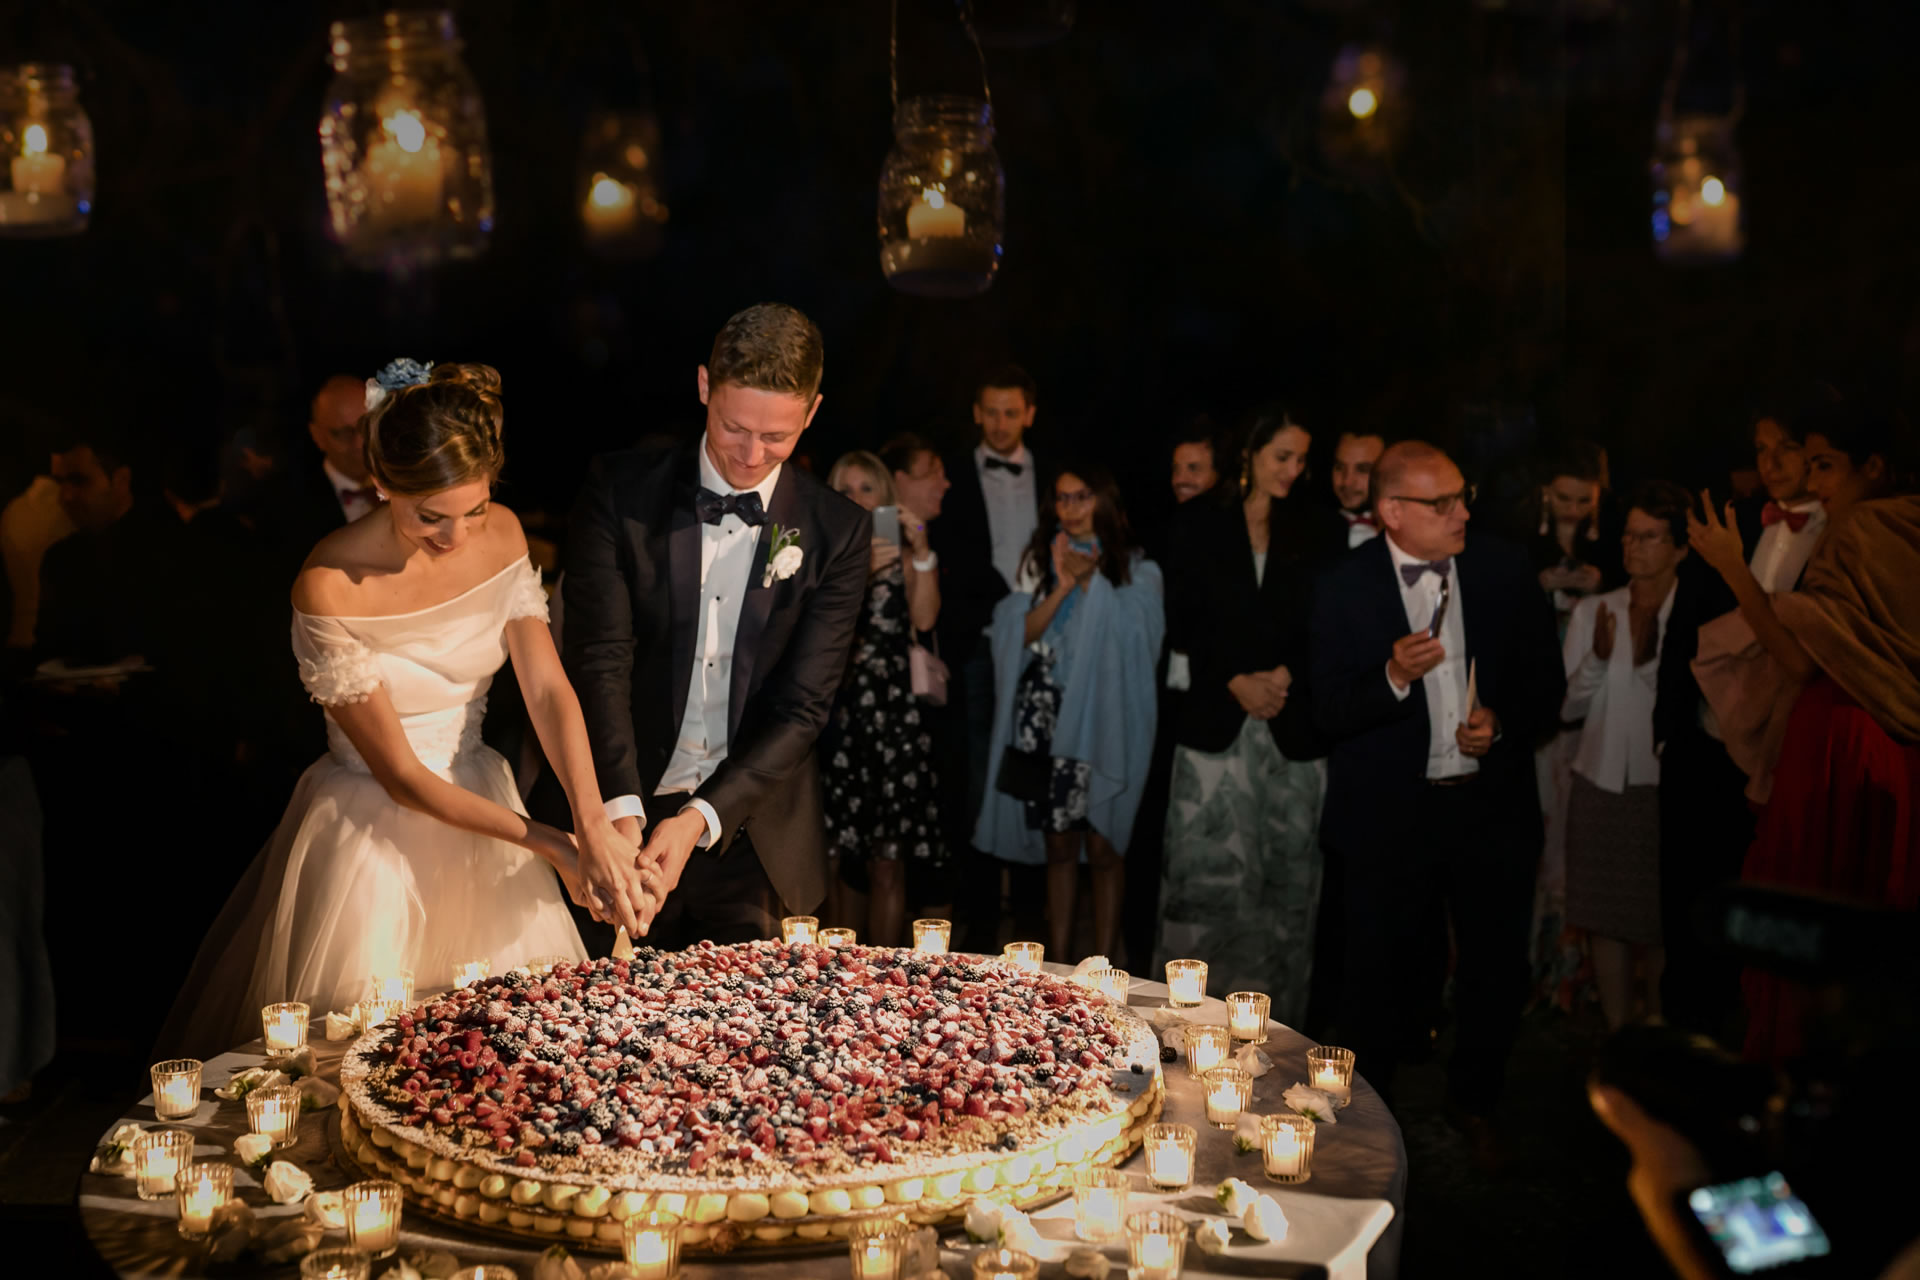 Cake Cut - 49 :: Amazing wedding day at Il Borro :: Luxury wedding photography - 48 :: Cake Cut - 49